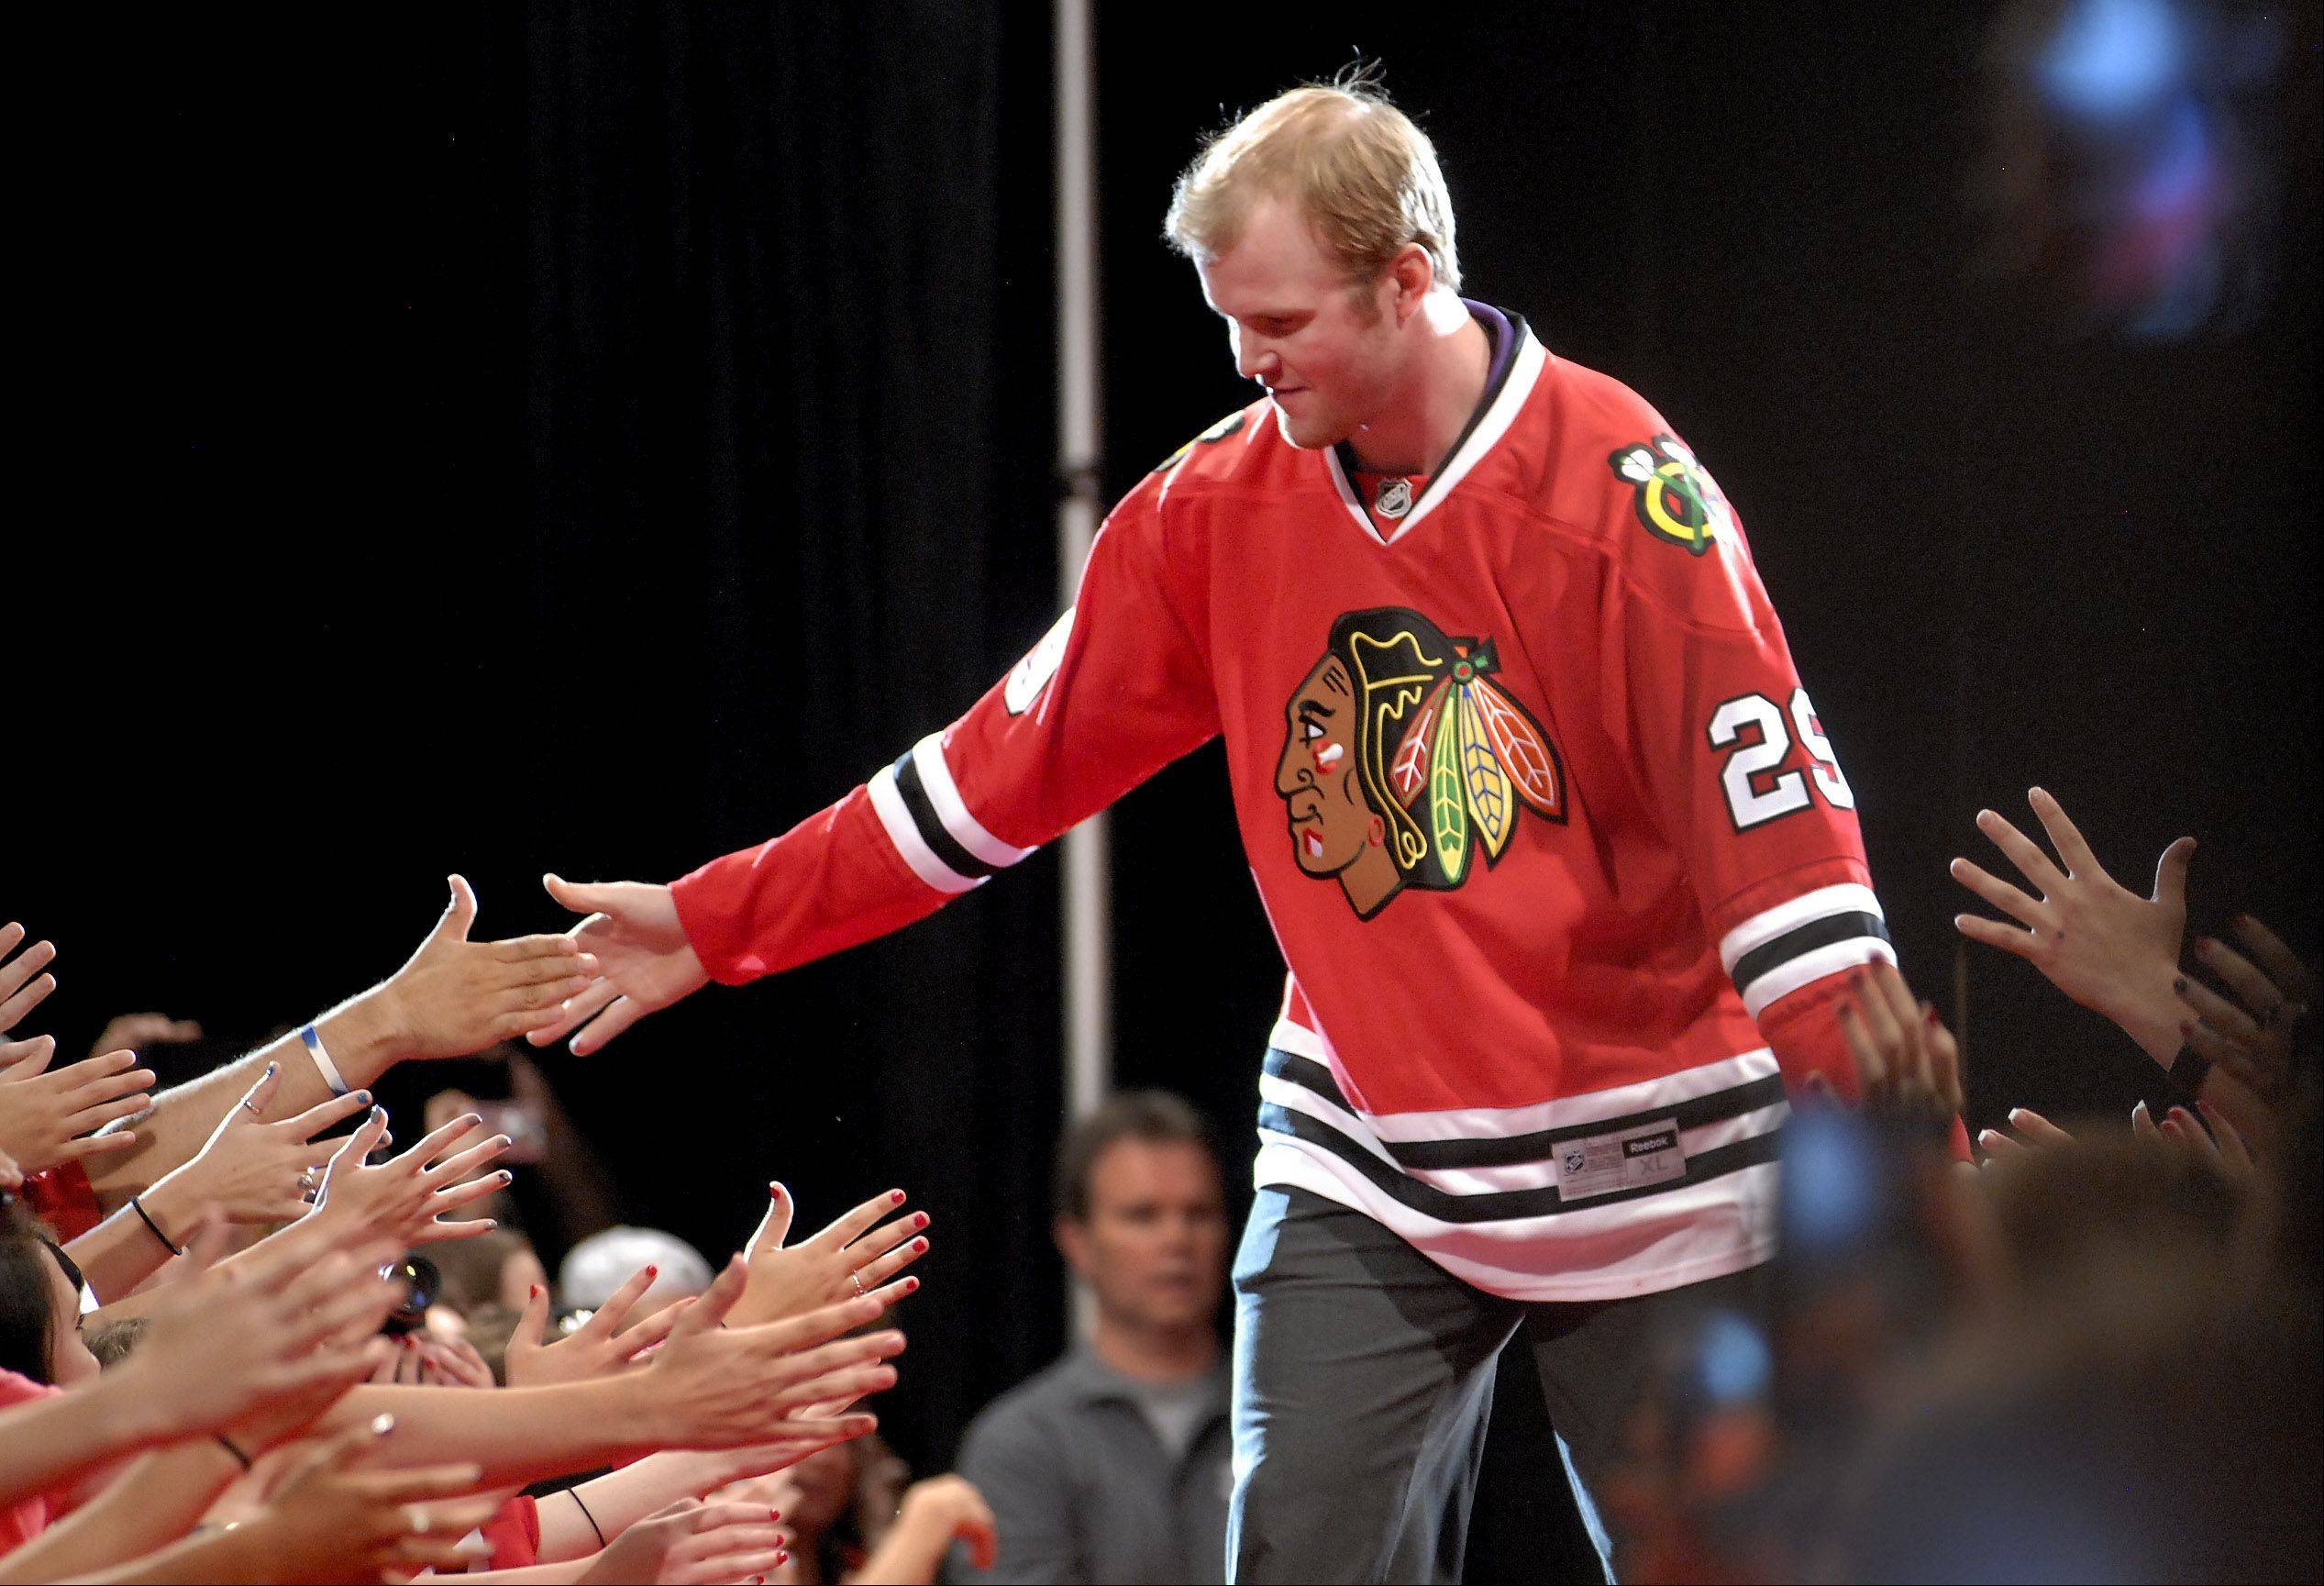 Big summer continues for Hawks' Bickell